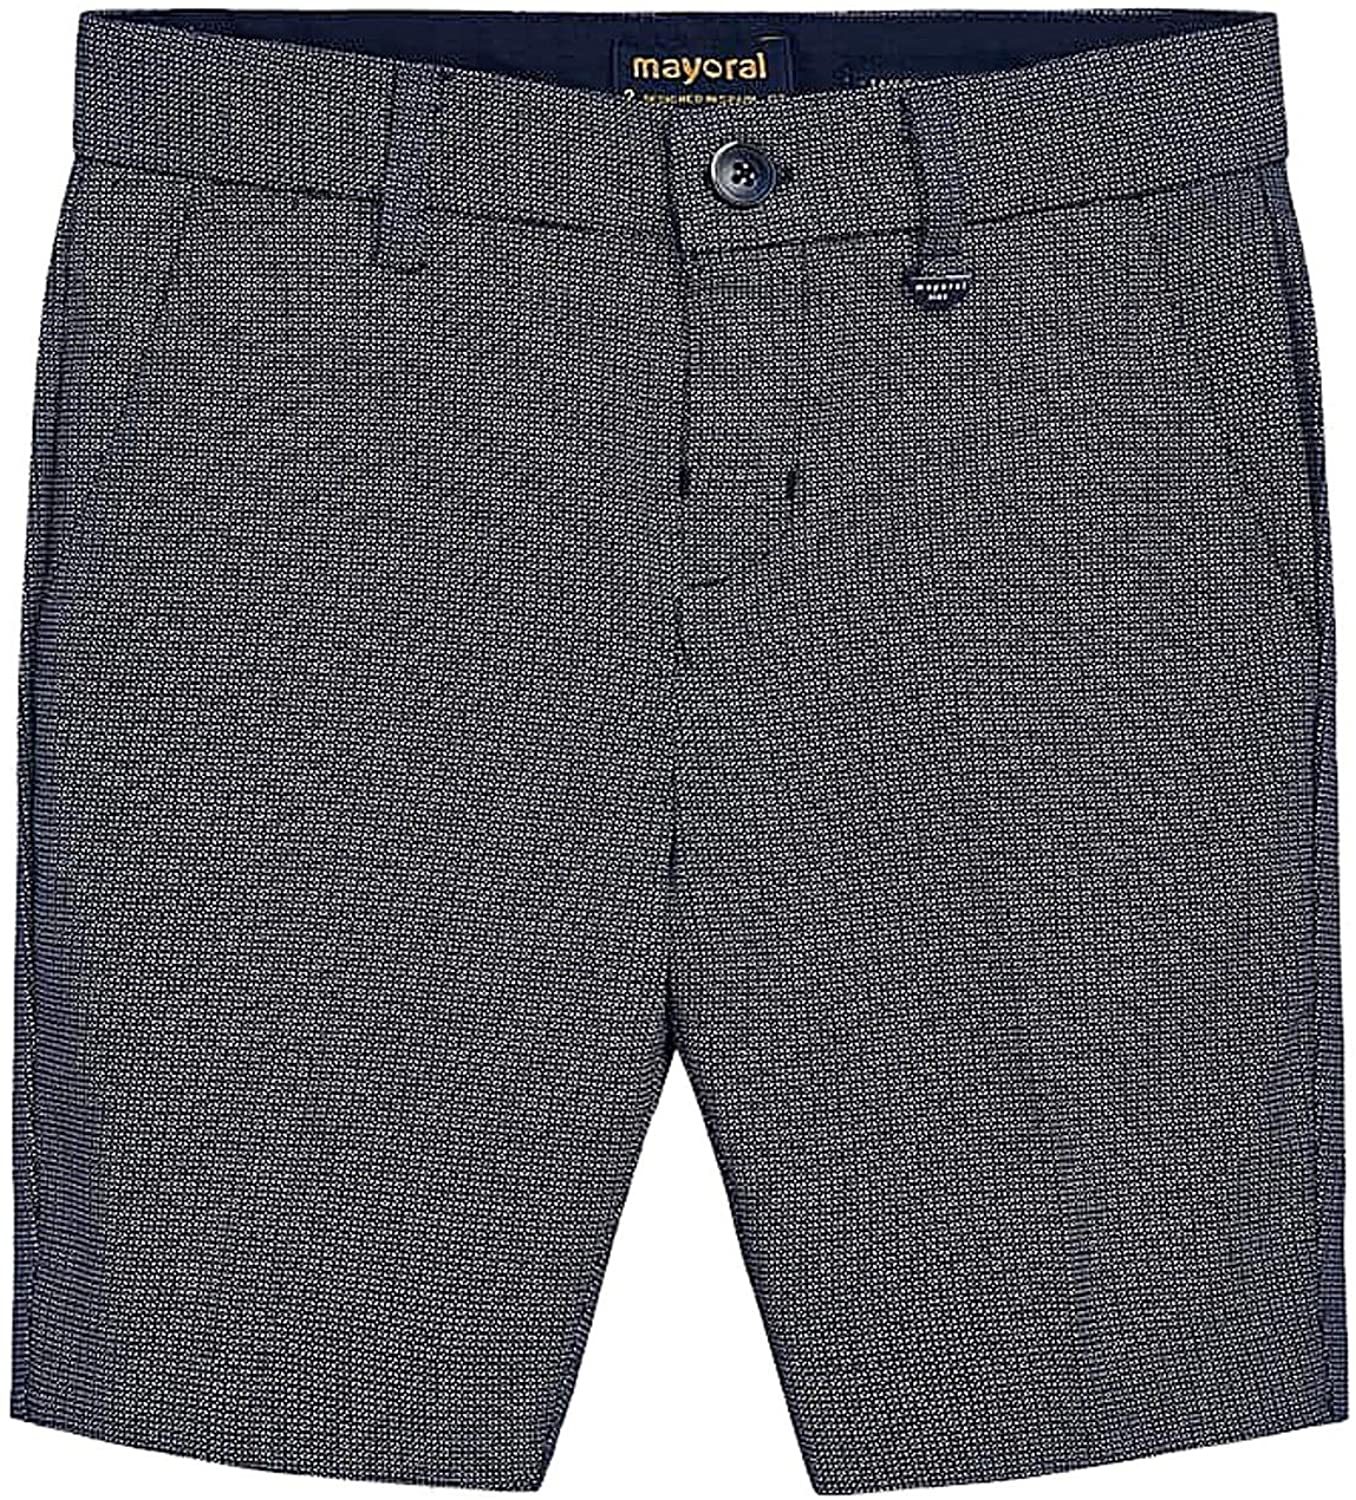 Mayoral - Printed Shorts for Boys - 3252, Navy